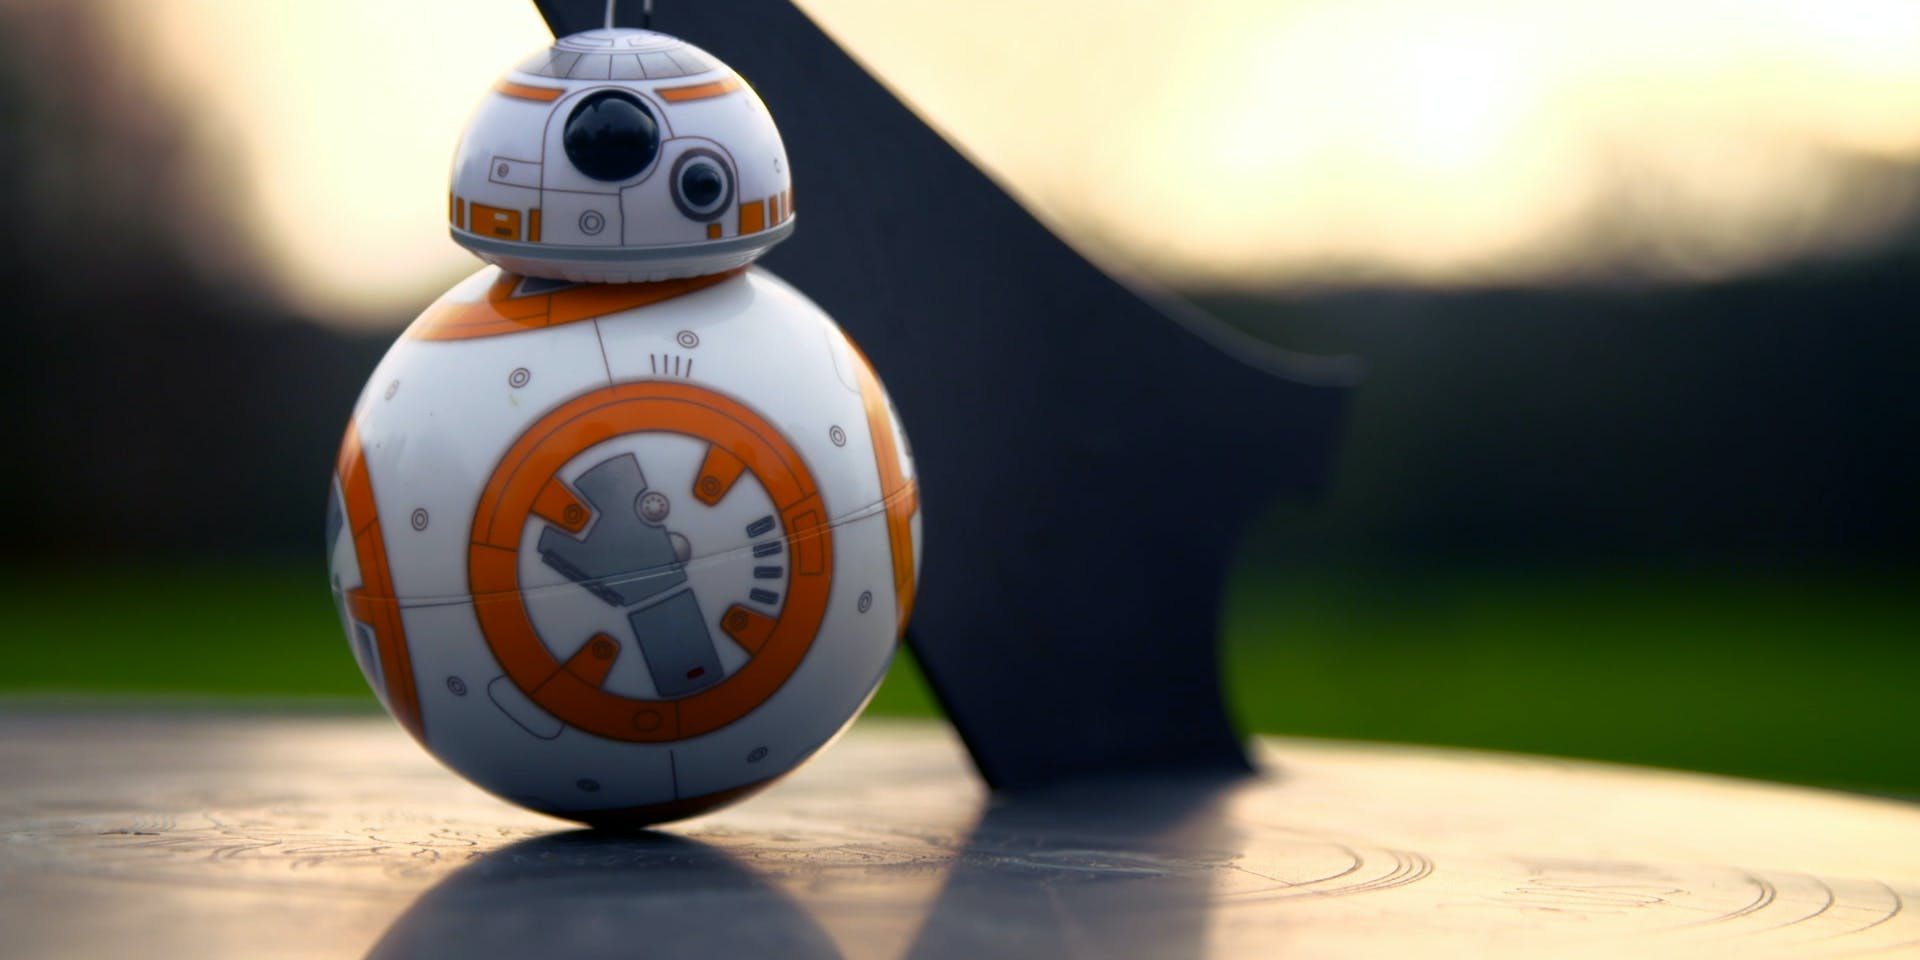 IBM Bluemix - BB-8